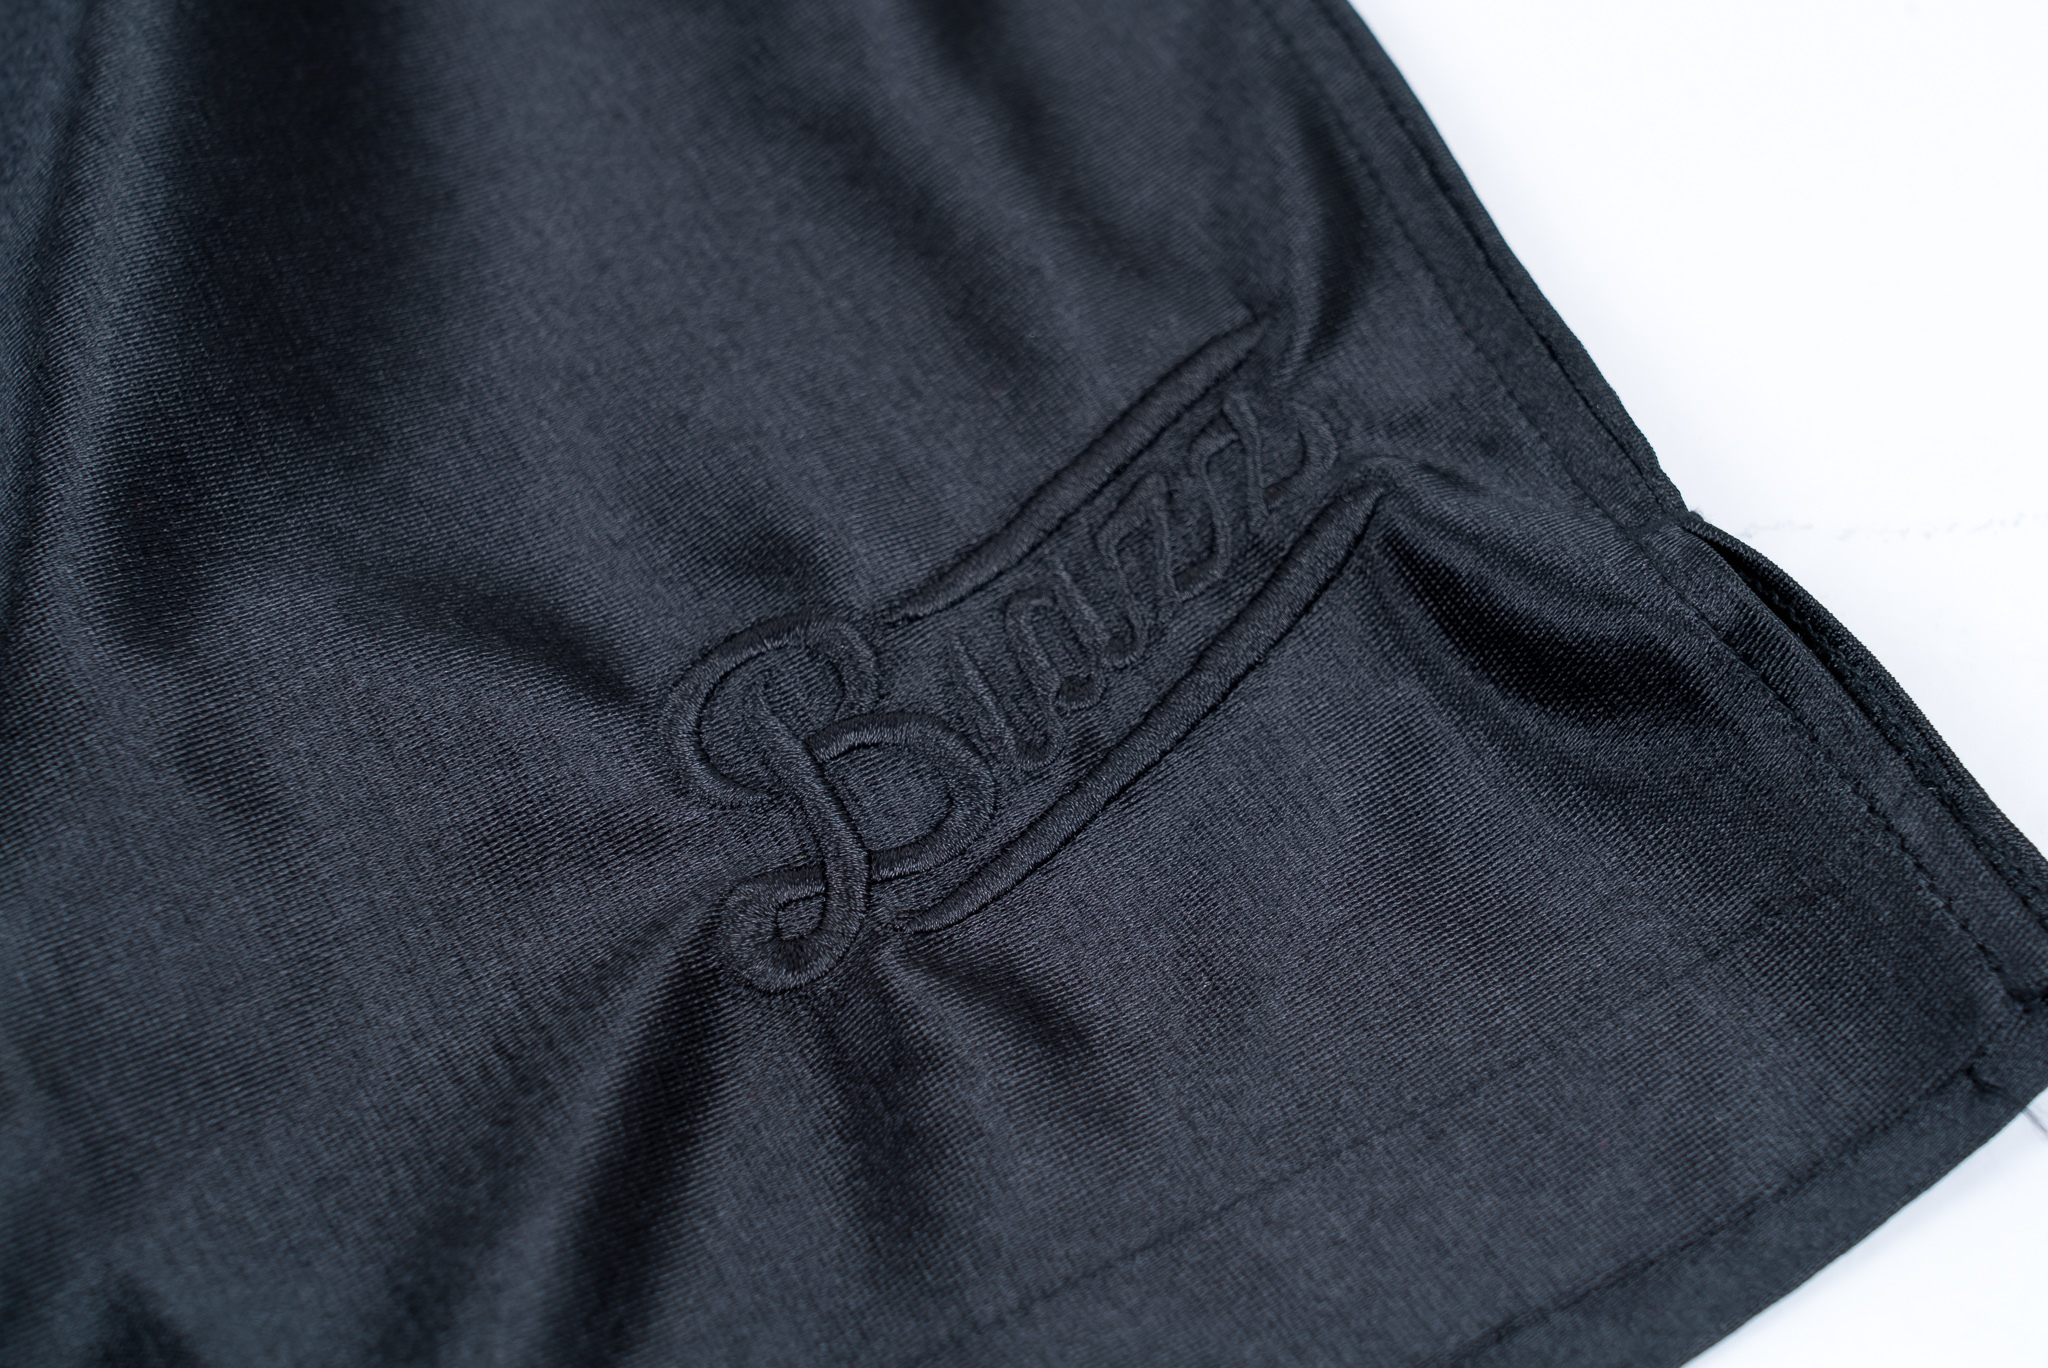 blazz sports soccer pants [BLACK]